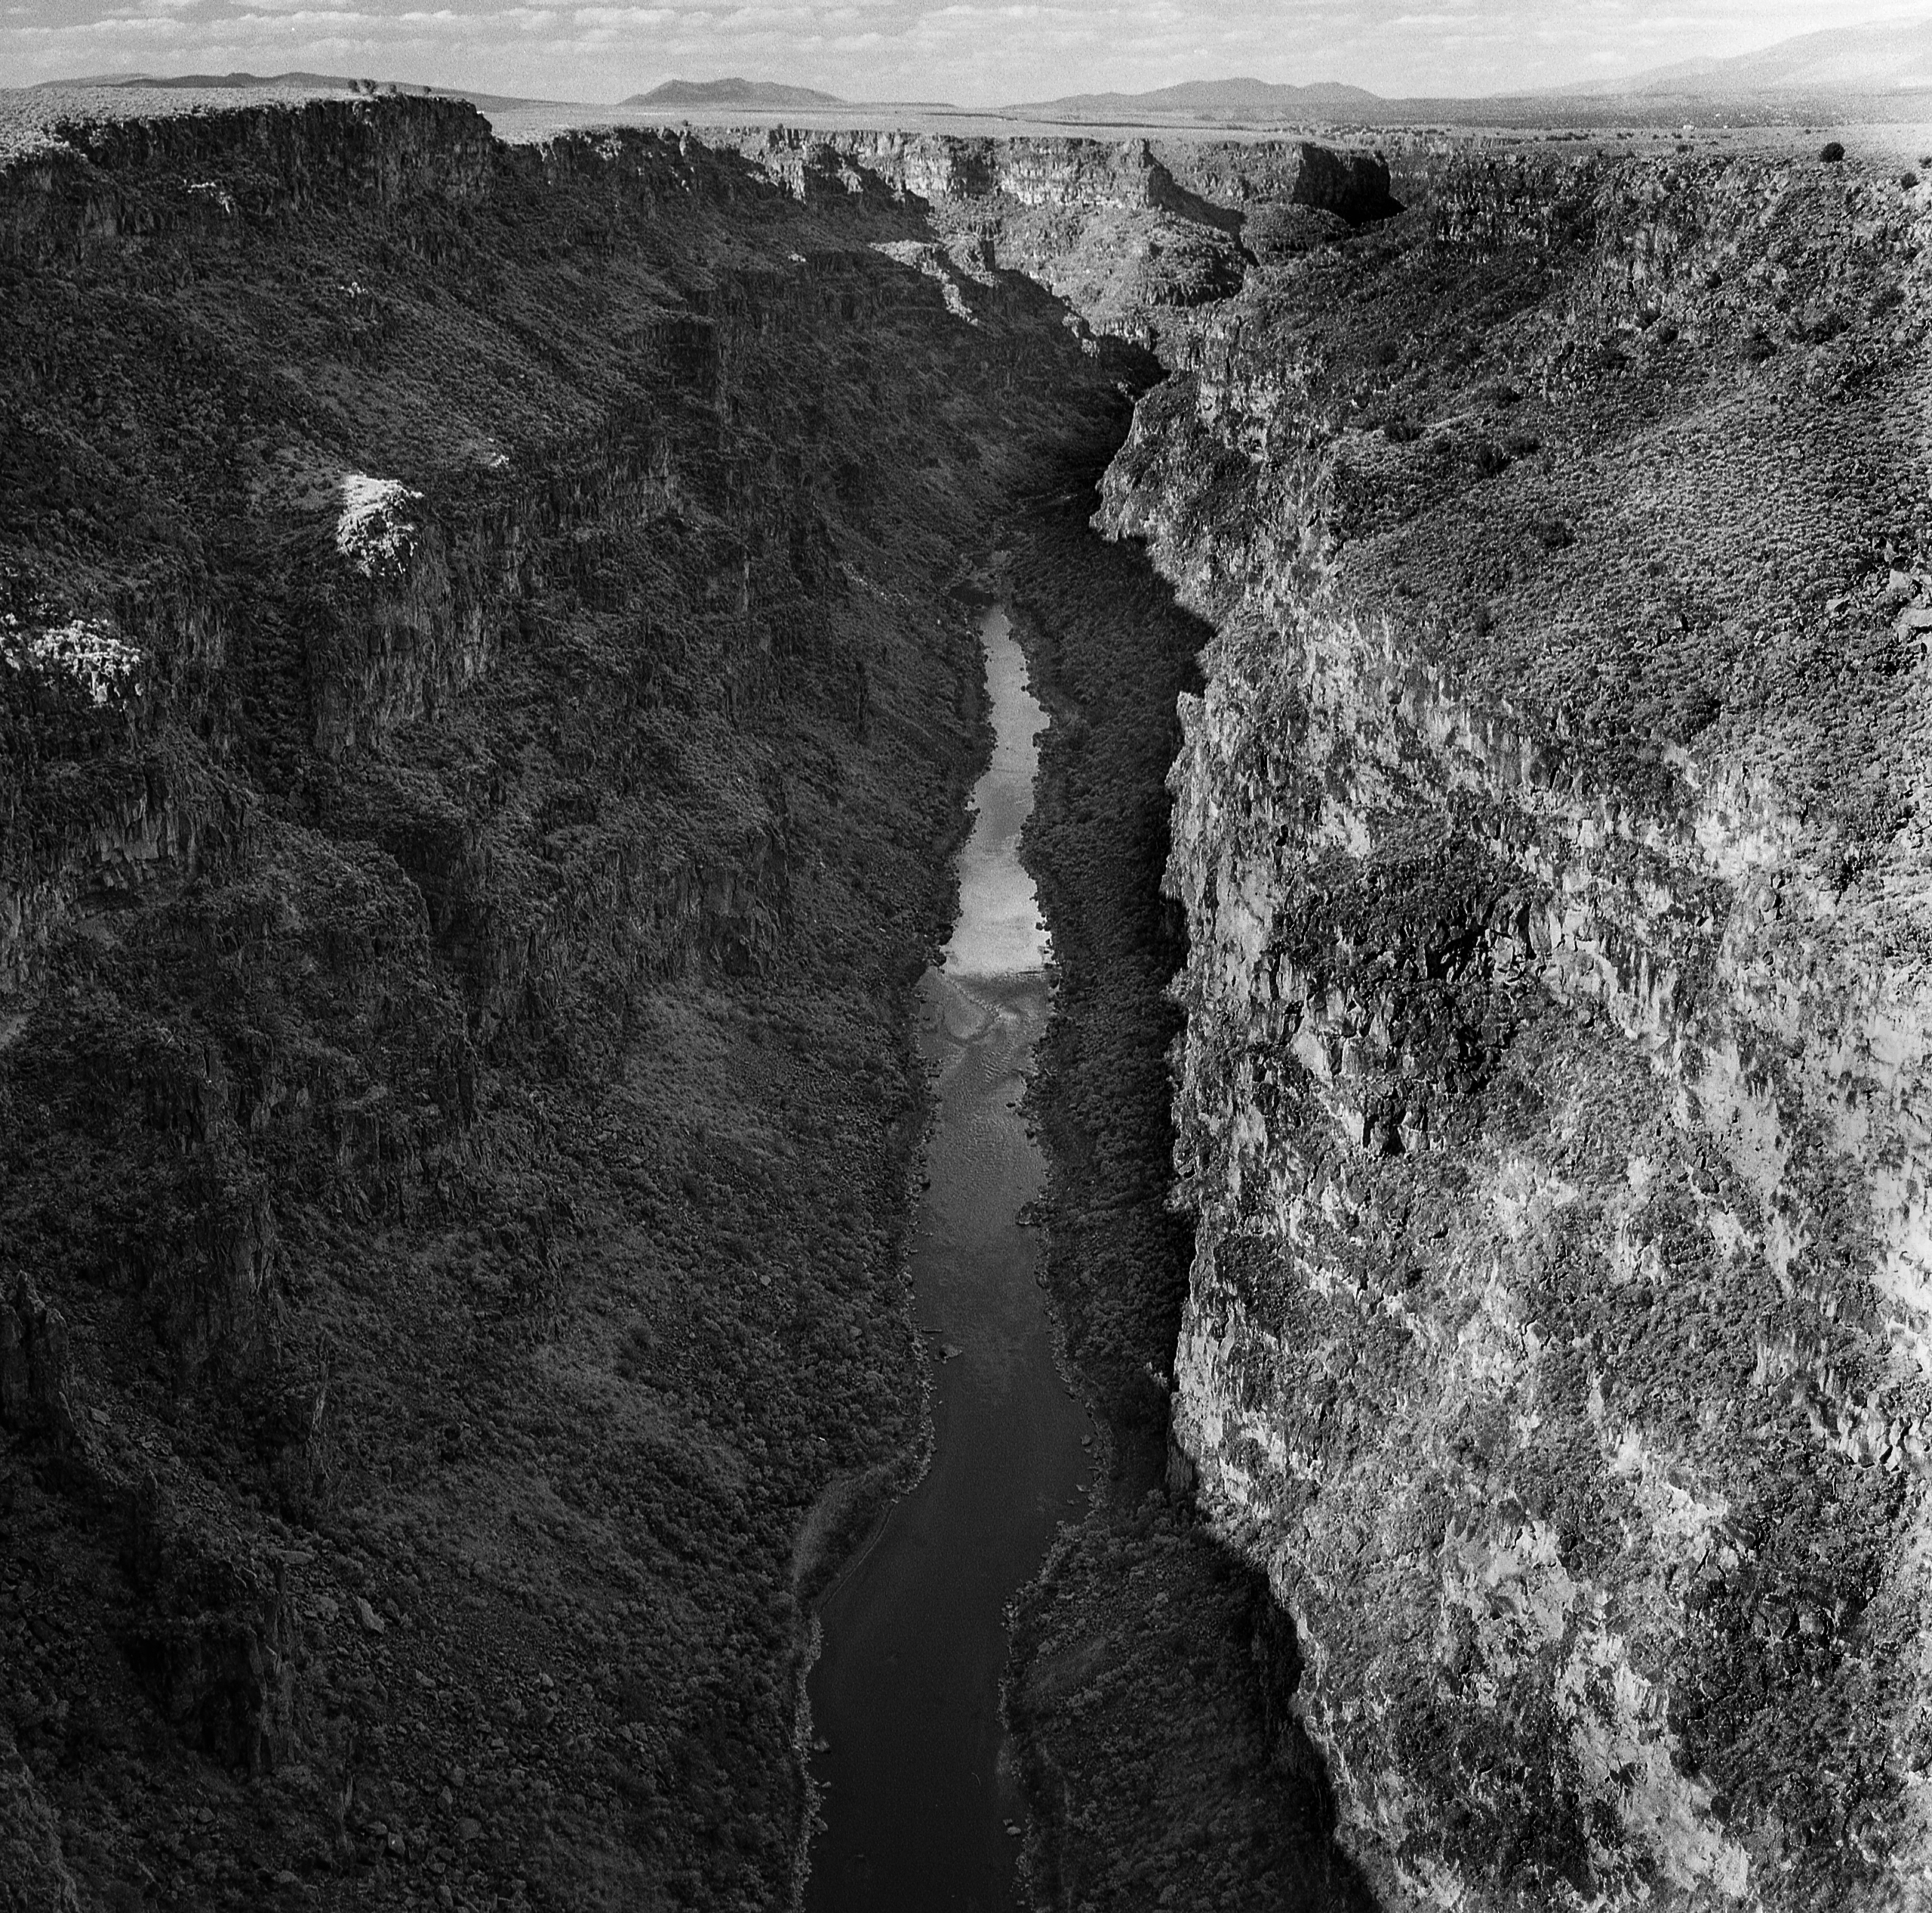 Rio Grande Gorge Bridge 565 fee - junwin | ello